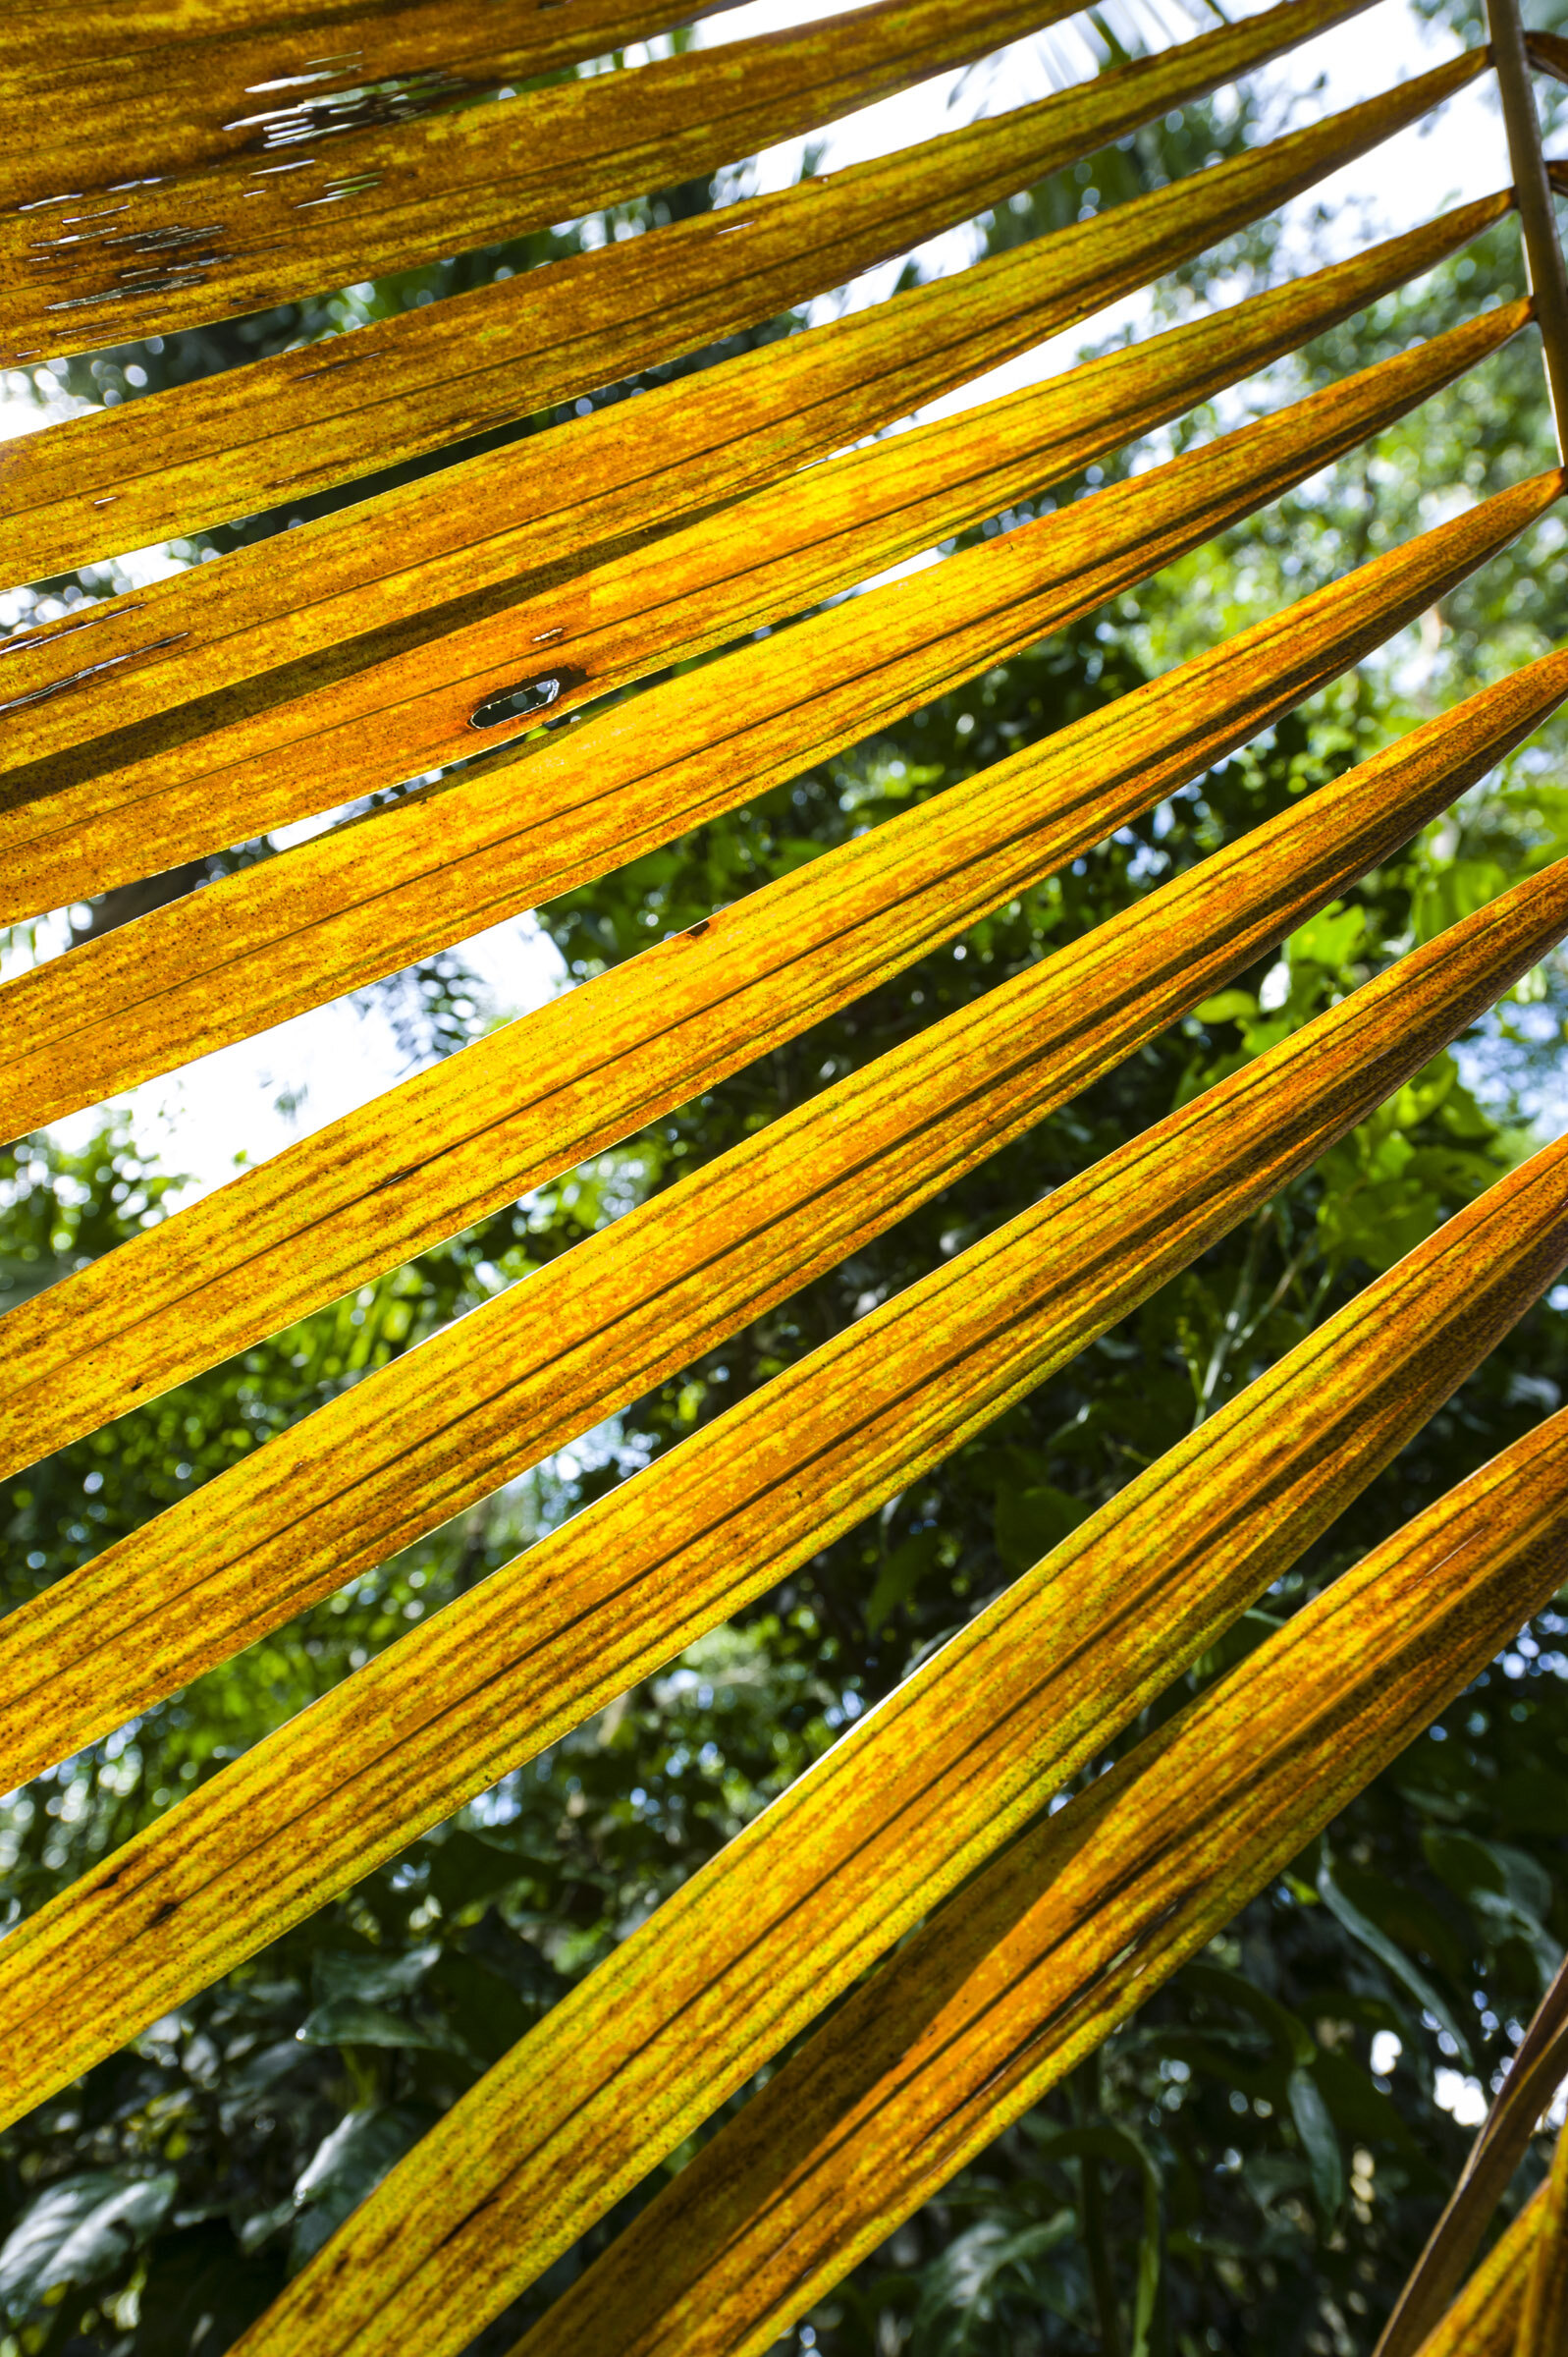 Palms are remarkably useful and productive. The leaves of several species of the Peruvian Amazon are dried for roof thatch. Photo by Jason Edwards / National Geographic at Camino Verde's reforestation center.